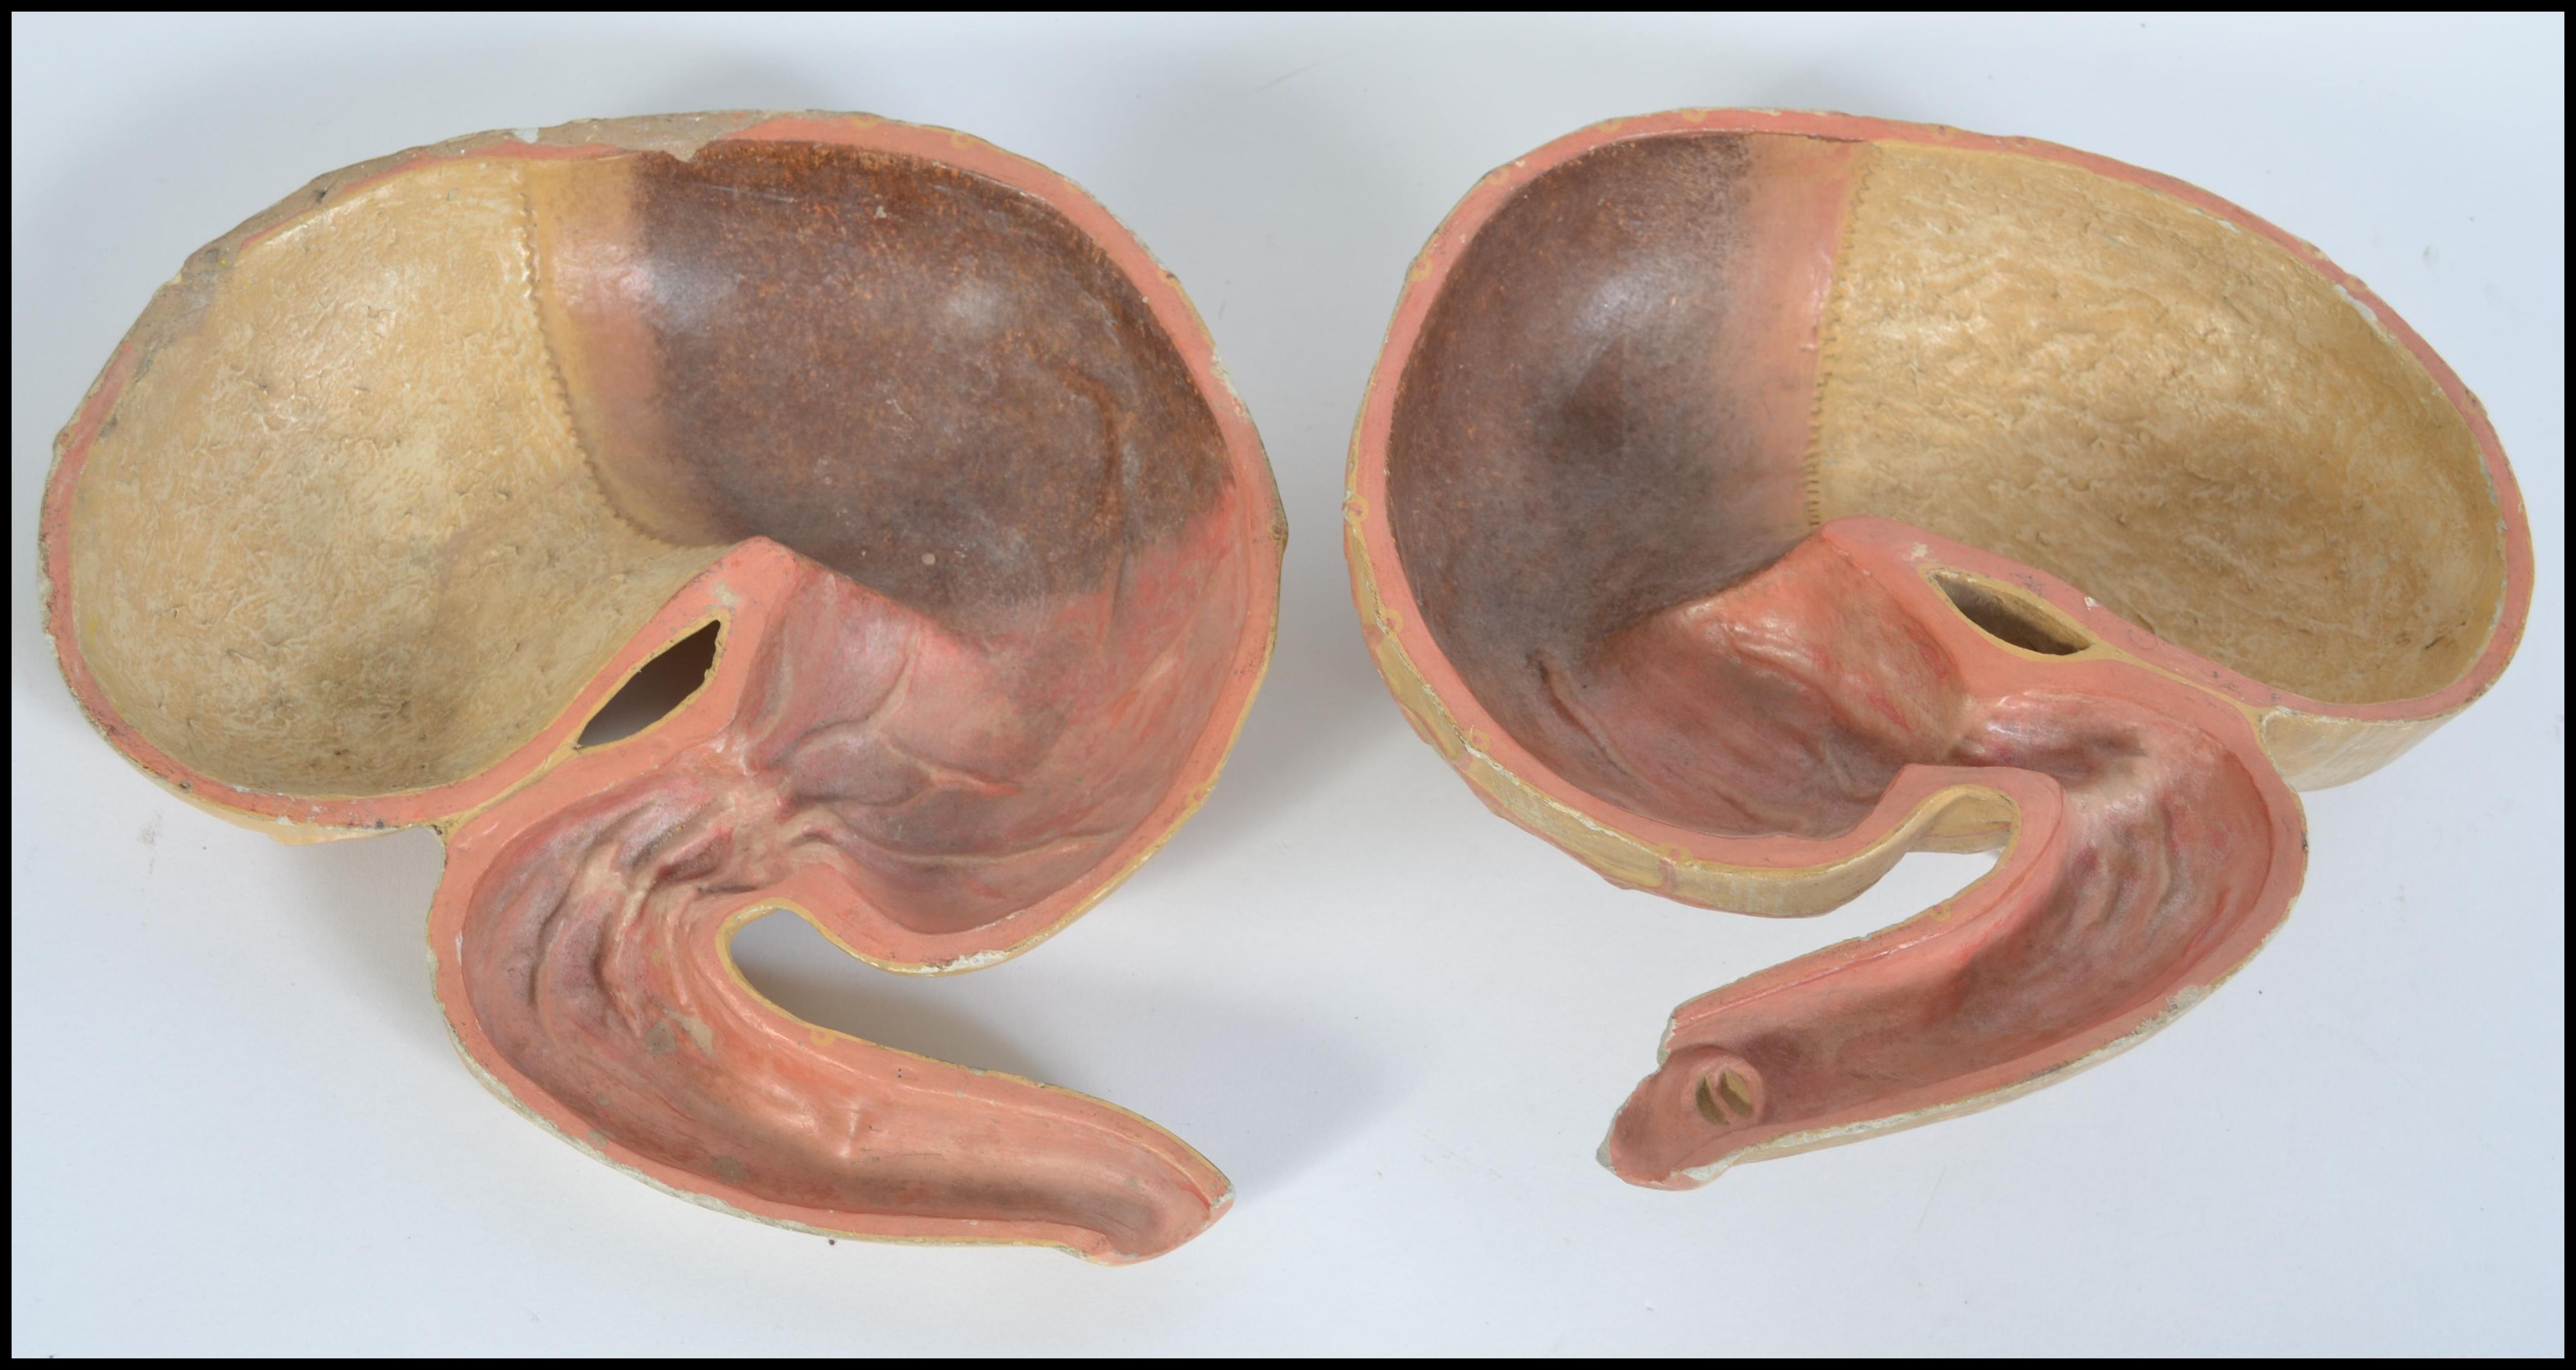 Lot 916 - A 20th century medical model of a human stomach split onto two halves. Measures 25cms wide.